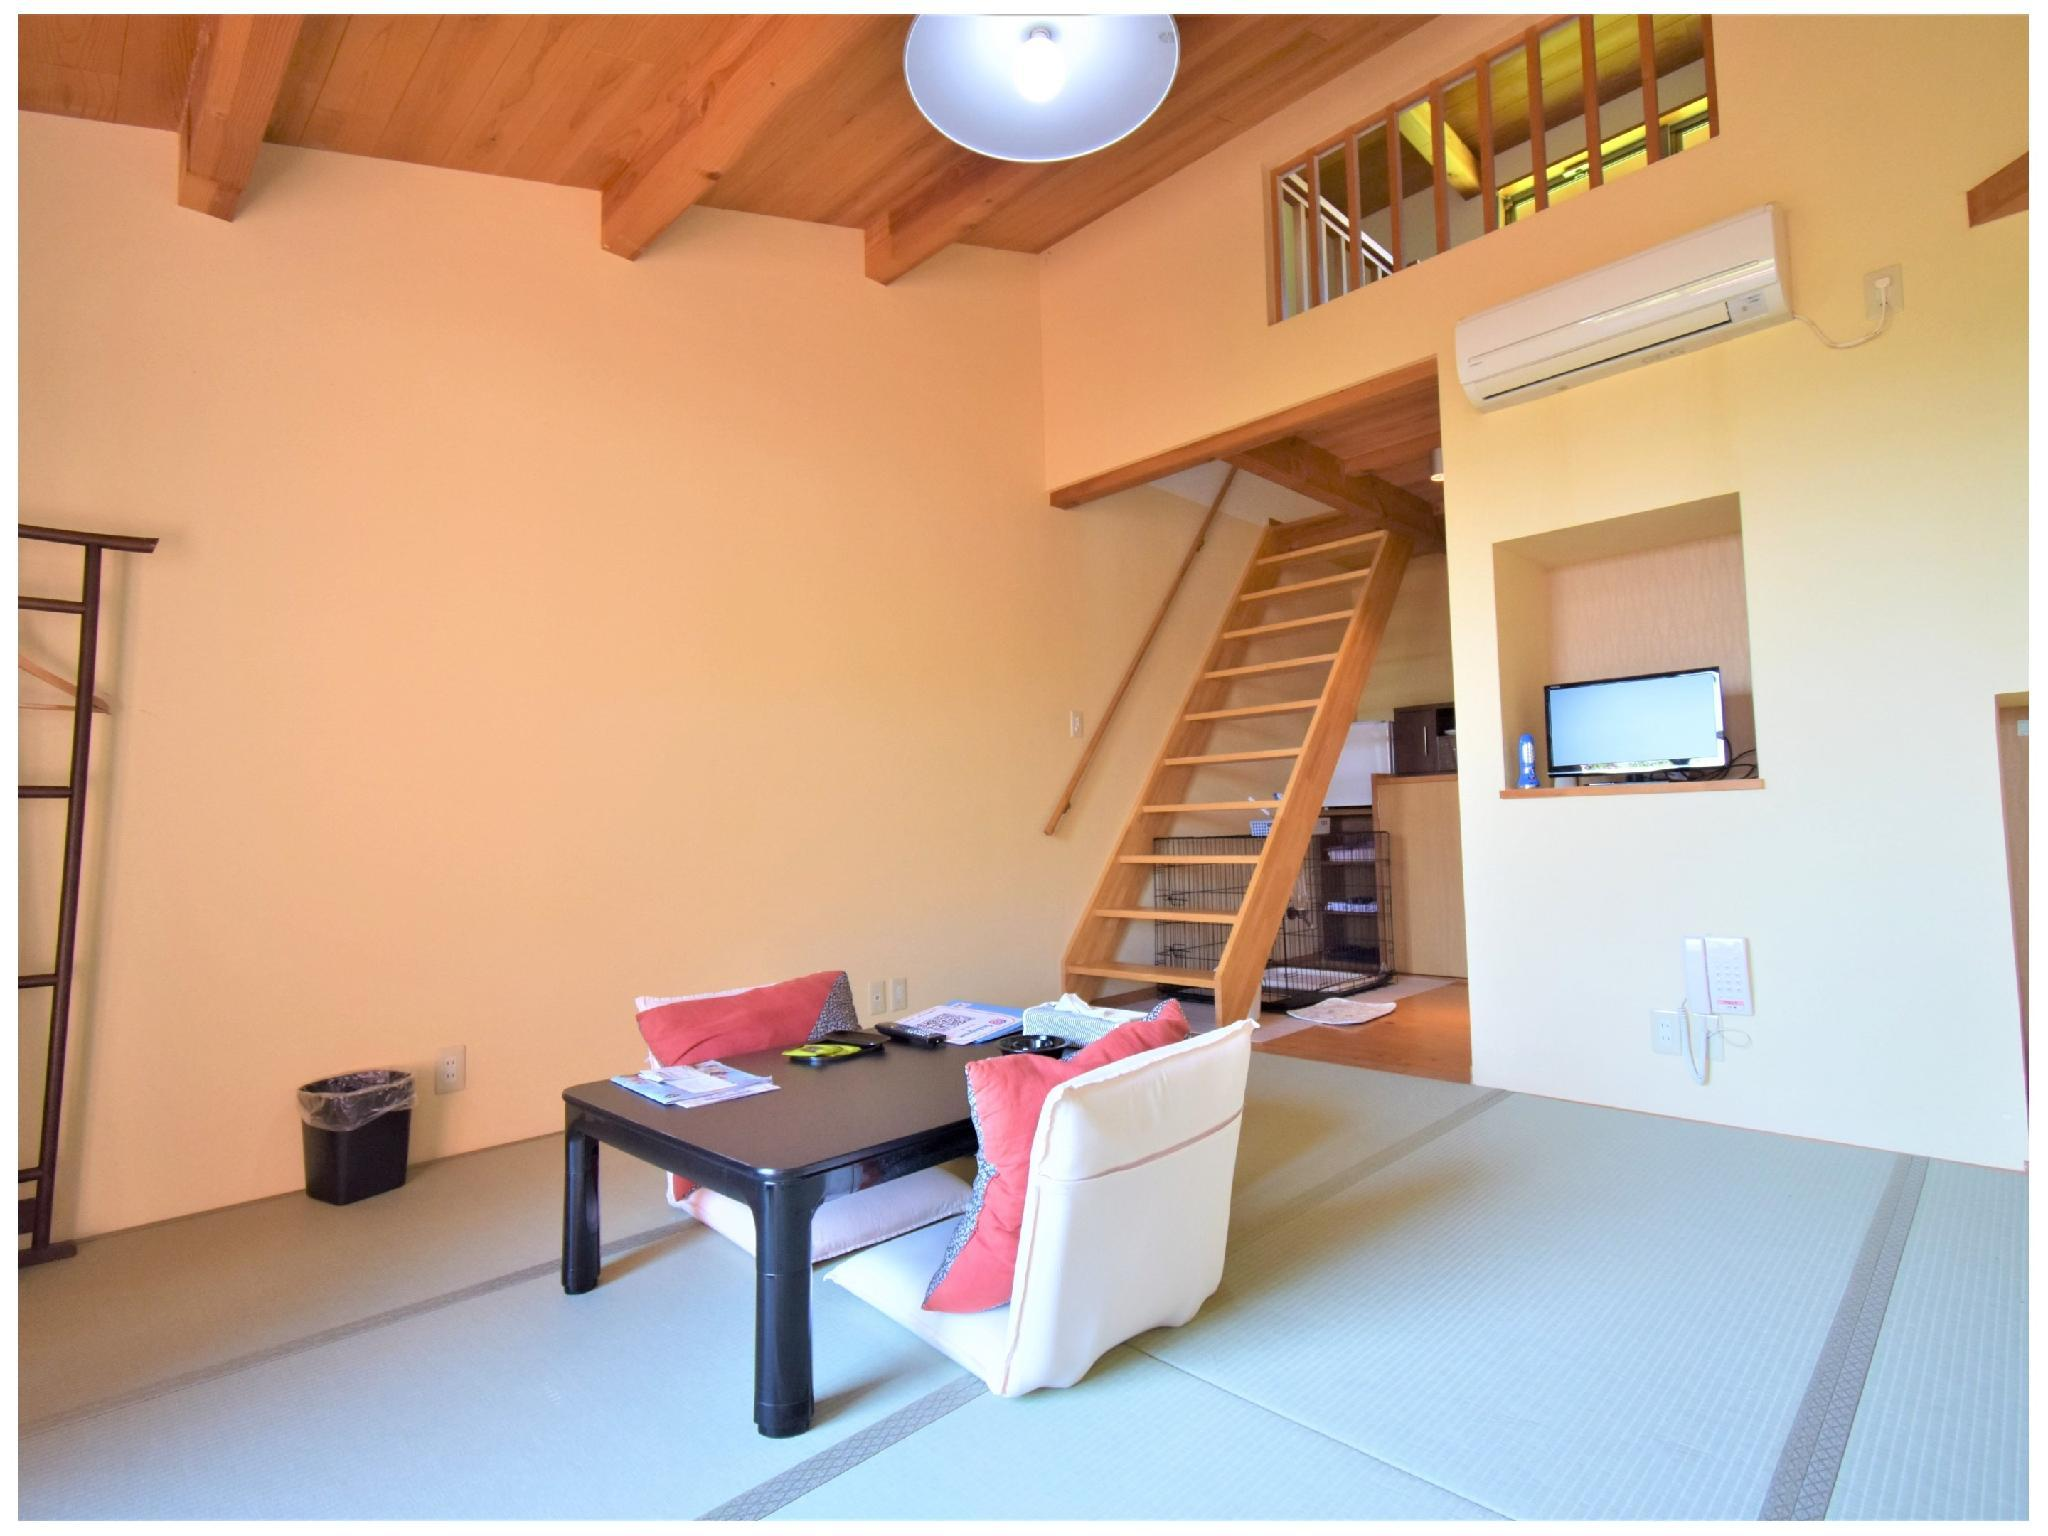 Detached Japanese-style Room (Loft + 2 Beds, Annex)